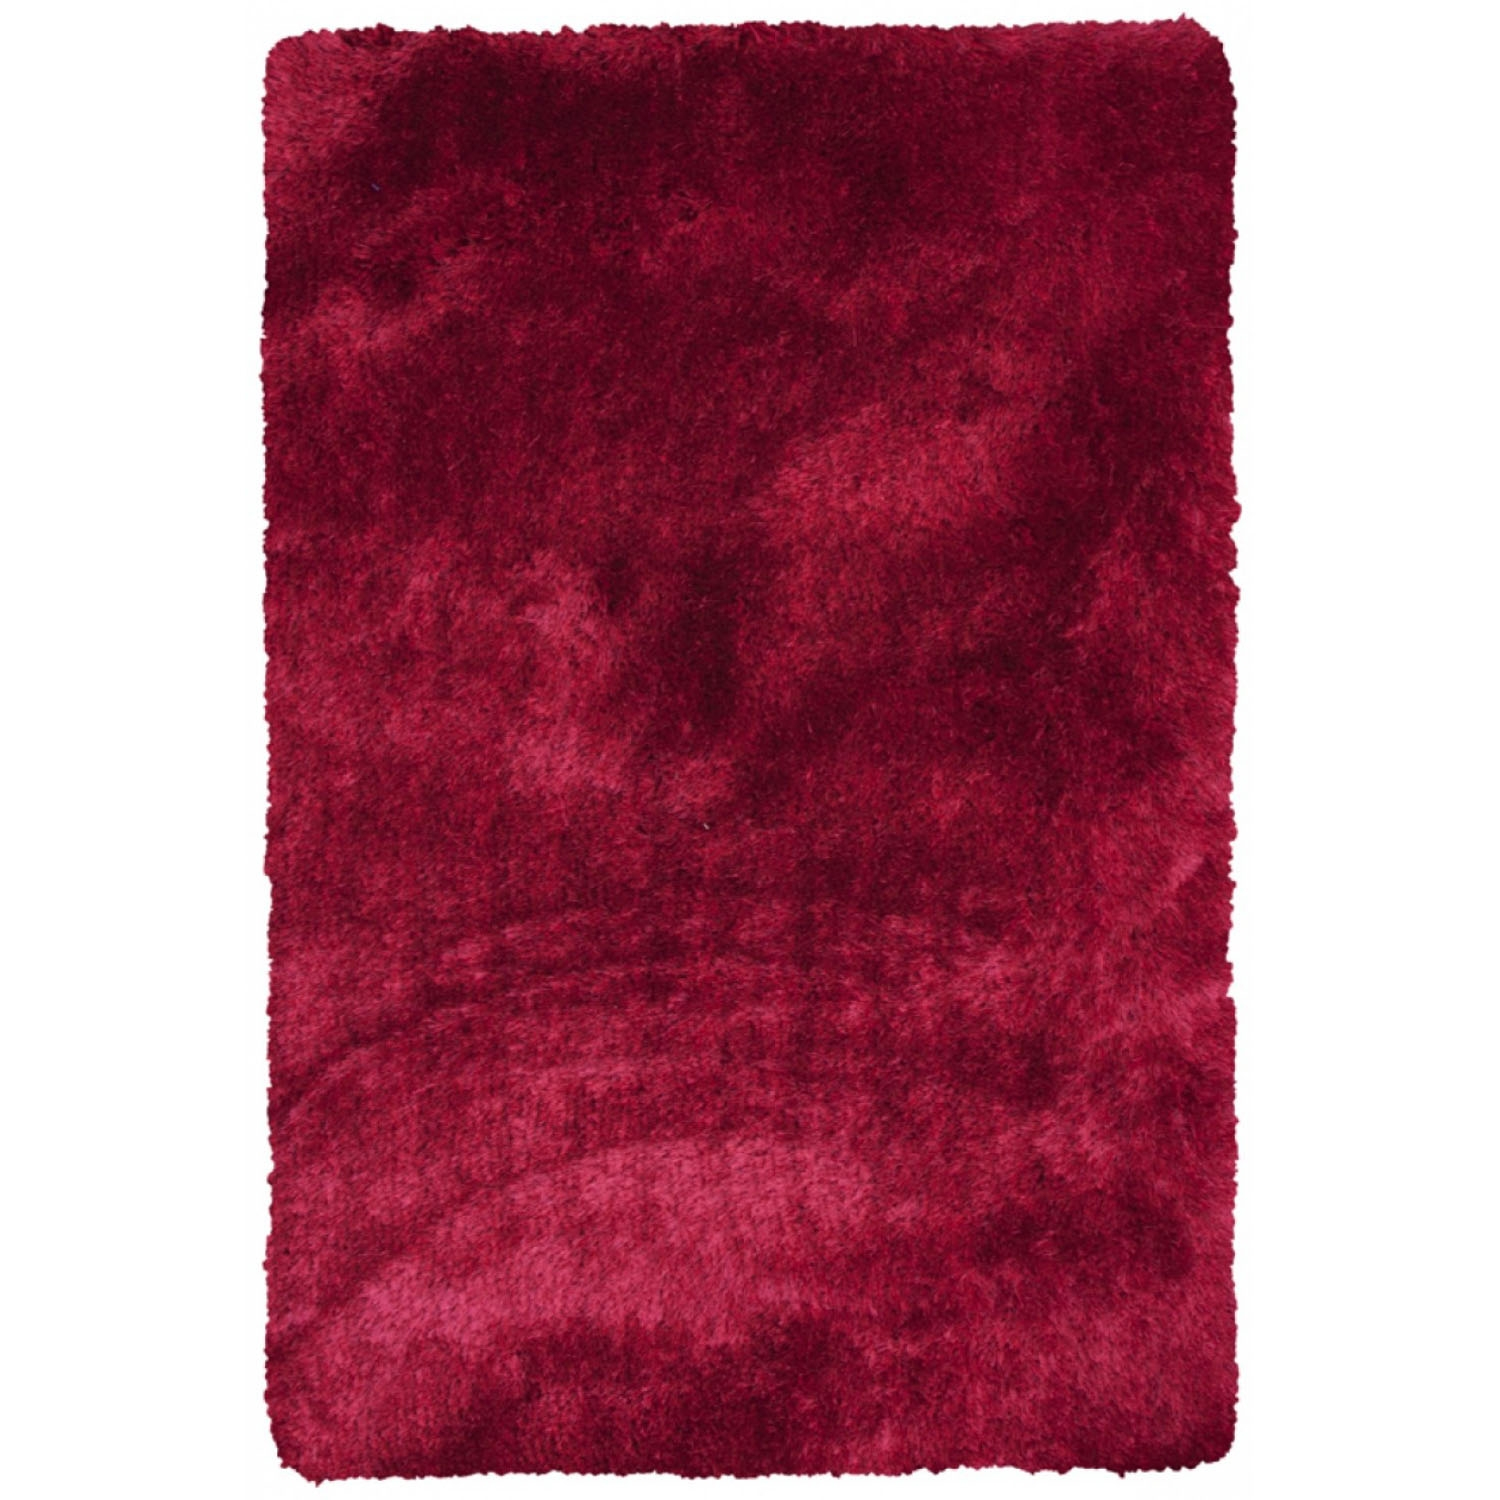 Image of Frith Rugs Cls703 Shaggy Design Rug, 170cm X 120cm, Red